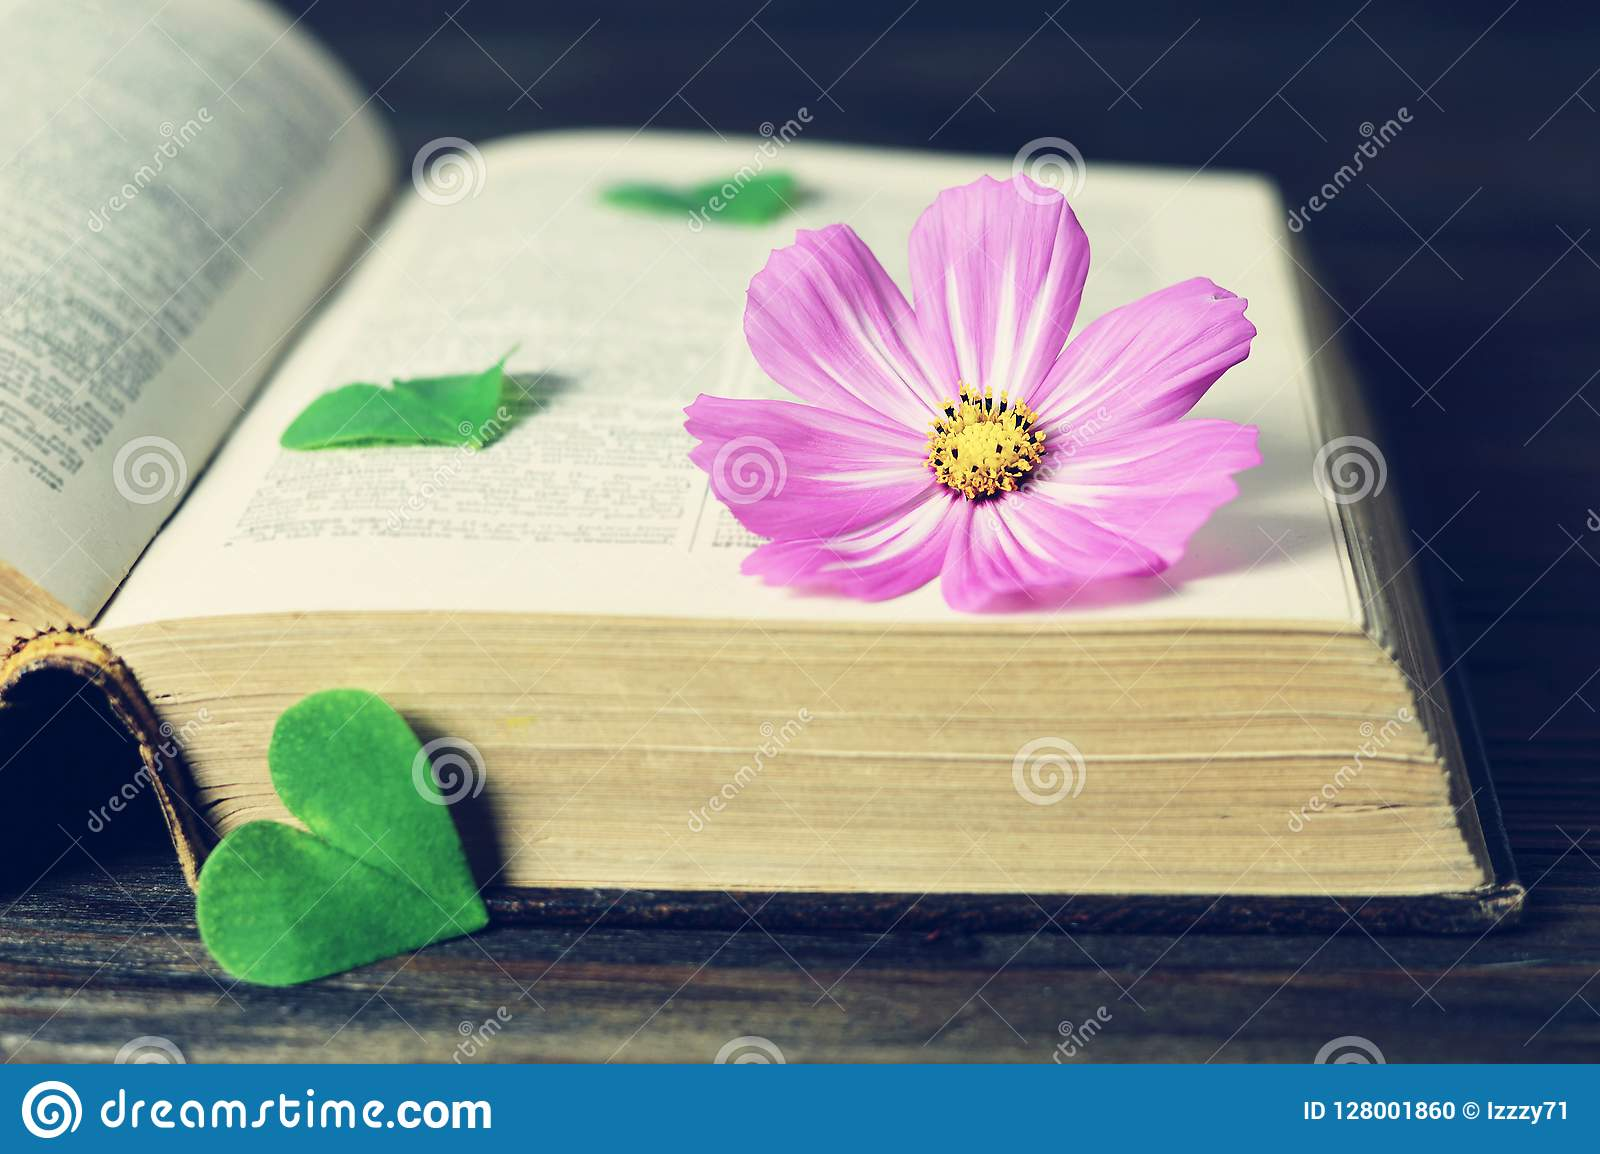 Happy Anniversary card with cosmos flower and vintage book